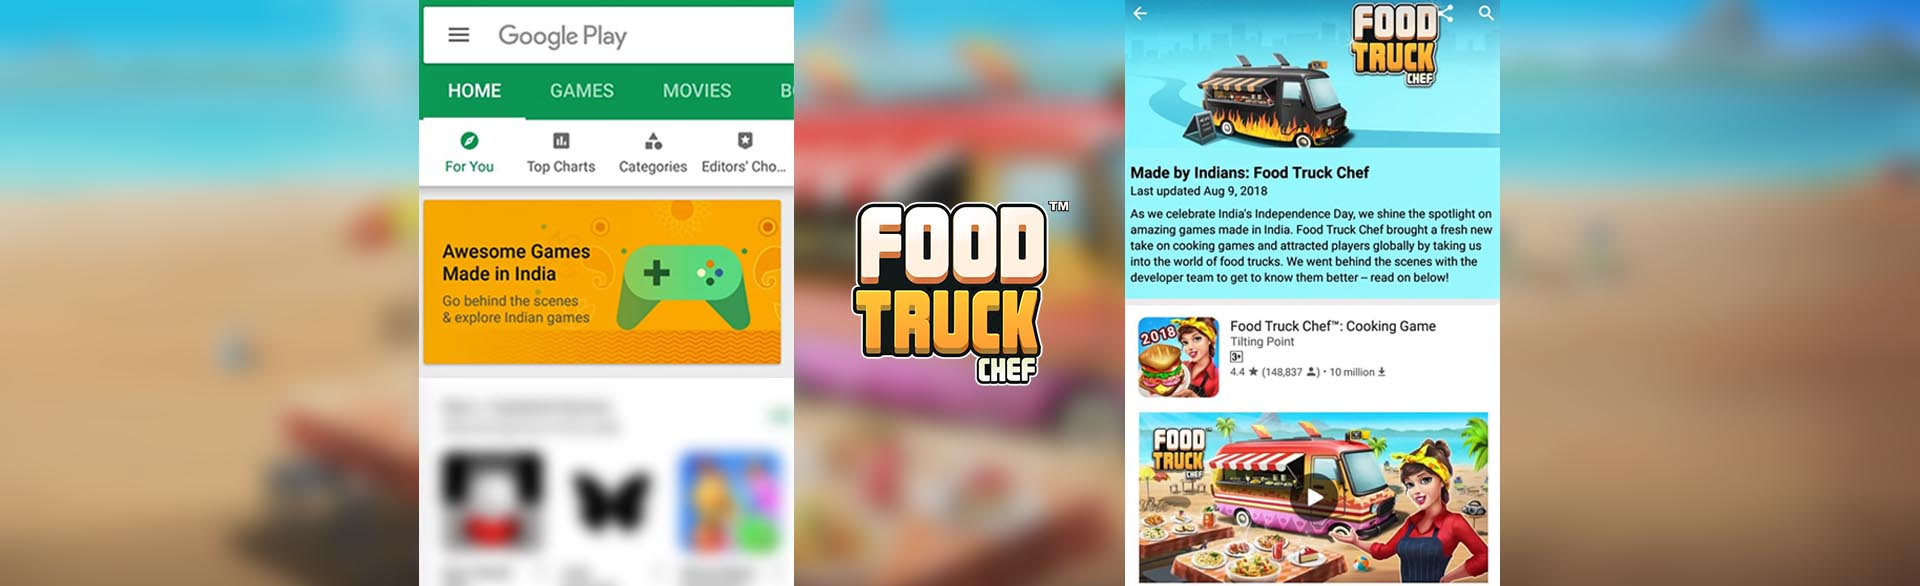 nukebox-studios-food-truck-chef-awesome-cooking-game-2